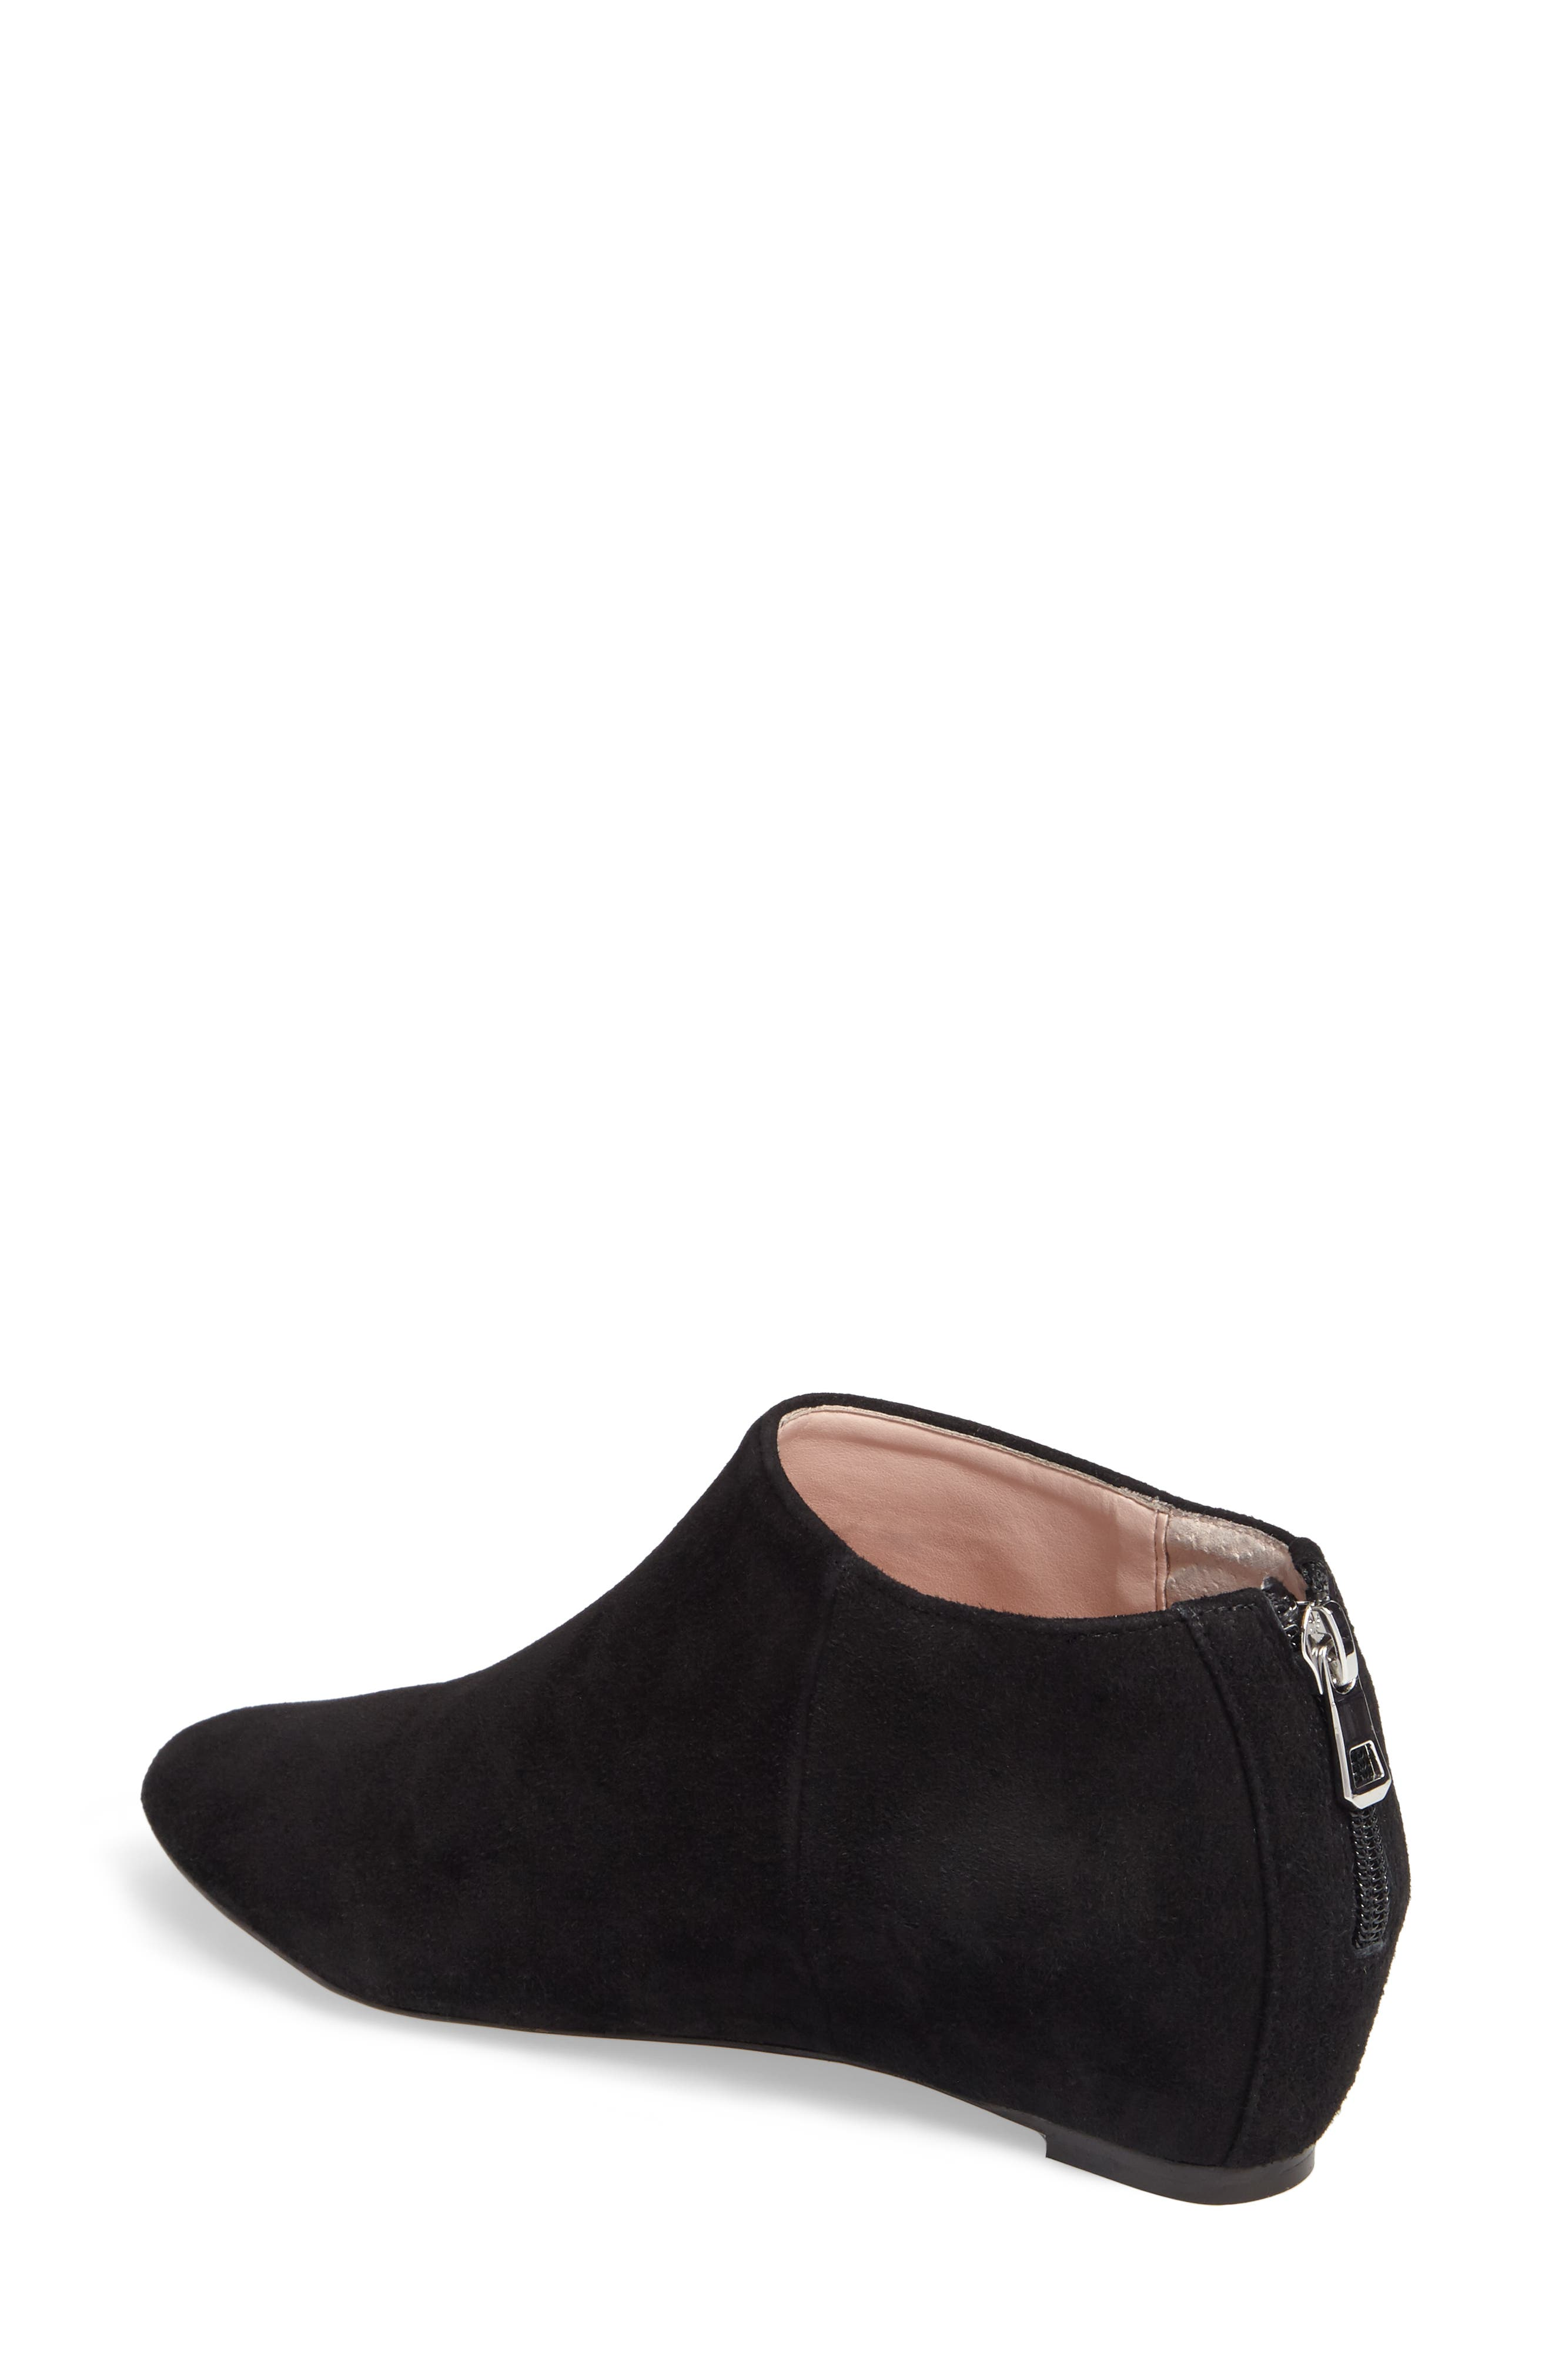 Aves Les Filles Beatrice Ankle Boot,                             Alternate thumbnail 2, color,                             Black Suede